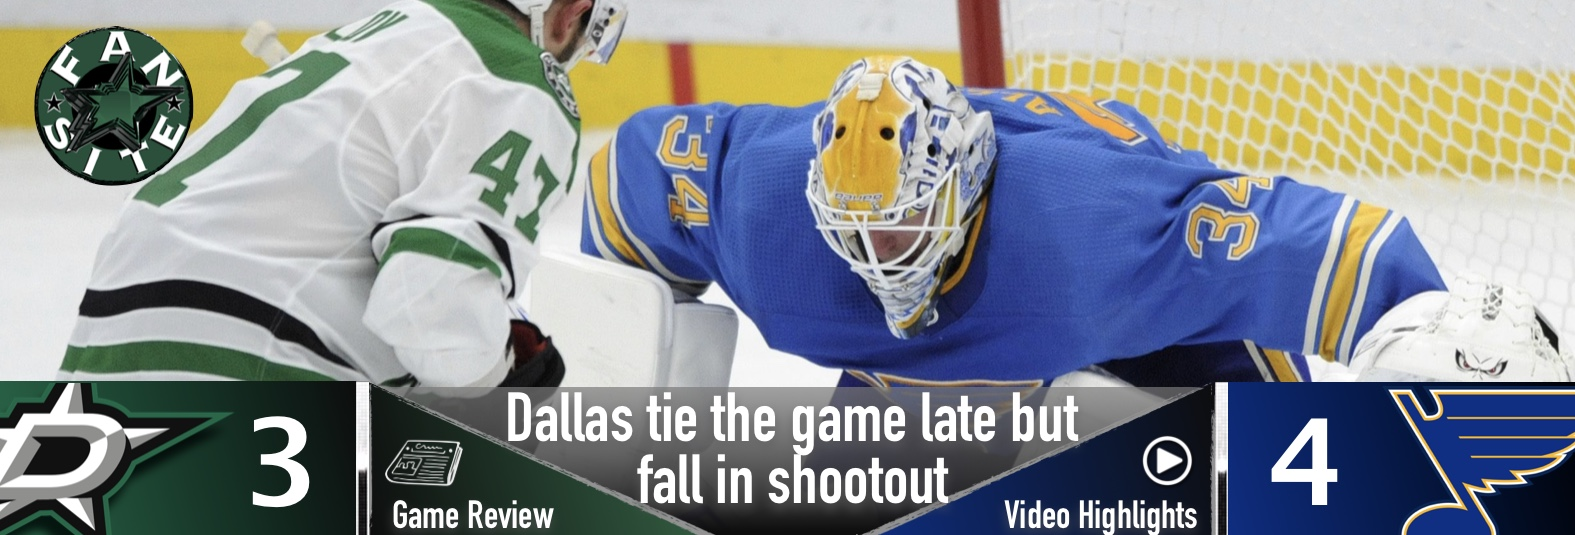 Stars tie it late but fall in shootout